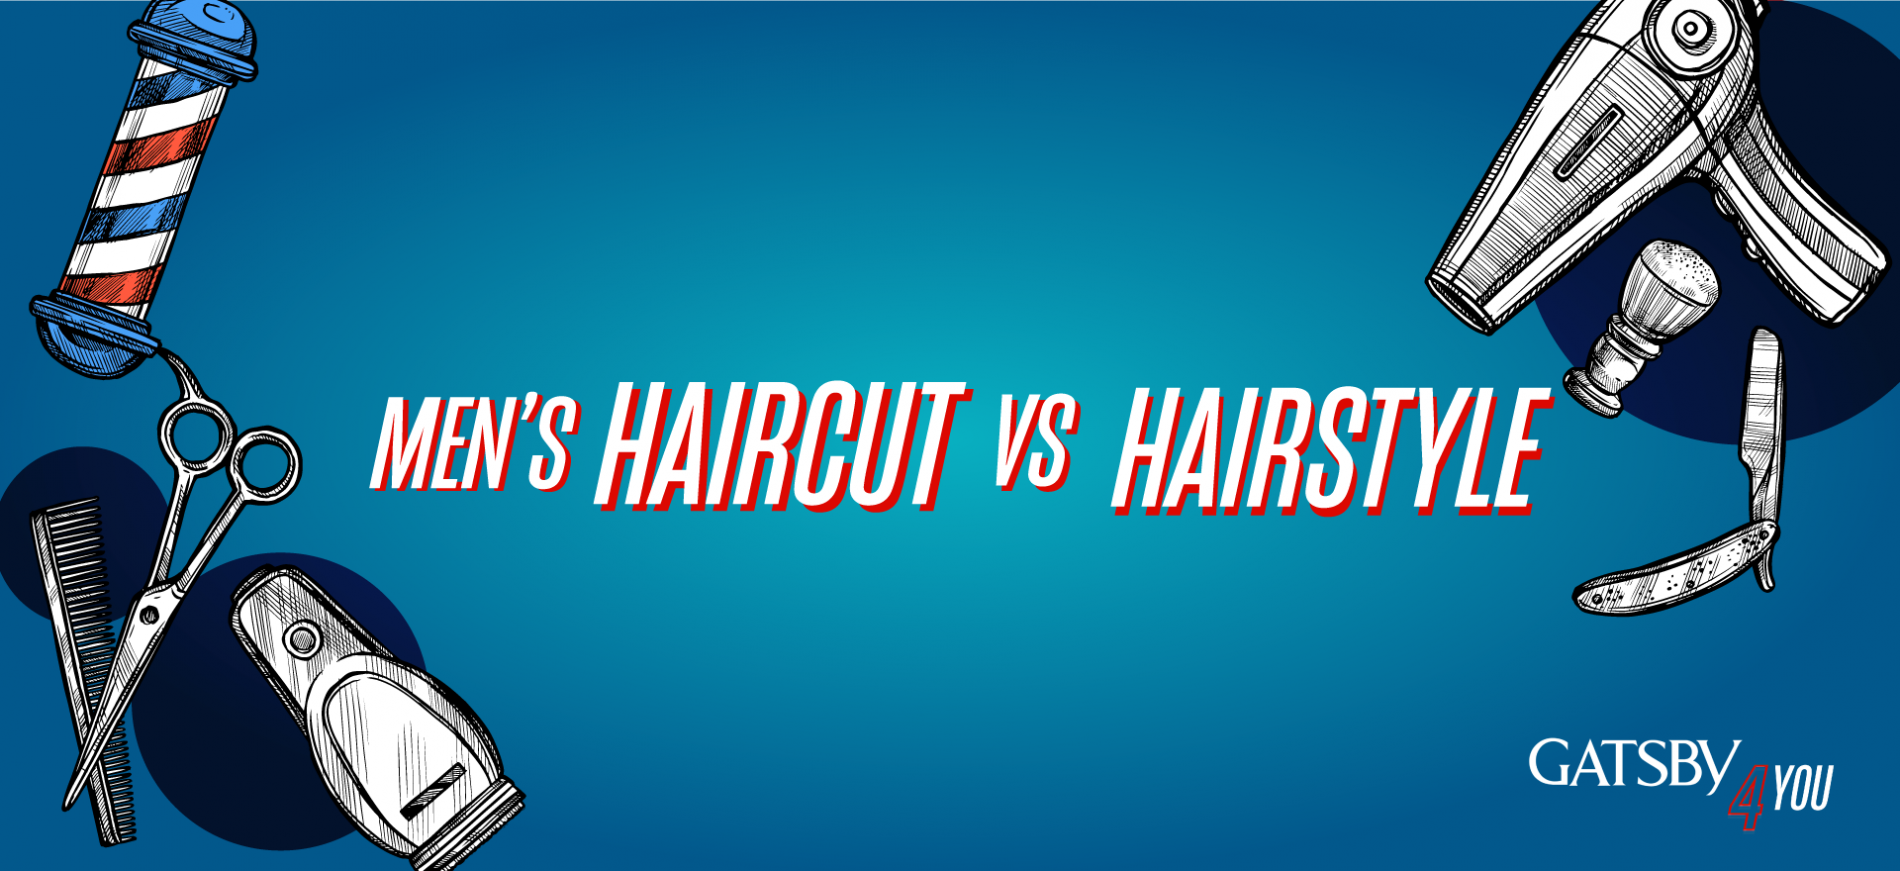 The Difference Between Men's Haircut And Hairstyle cover photo